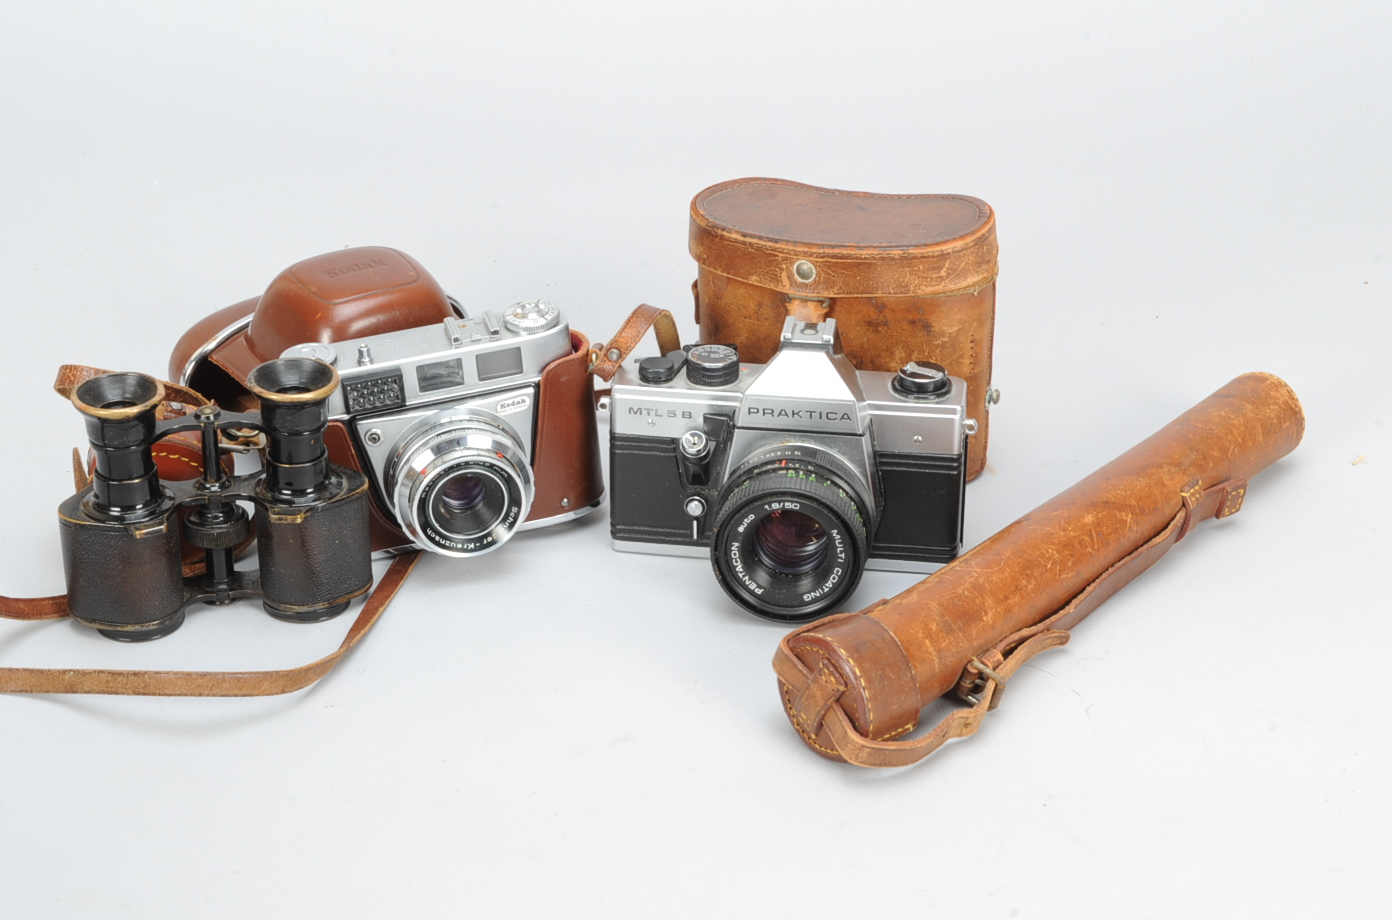 Lot 31 - Two 35mm Cameras and Accessories, a Praktica MTL 5B SLR camera, shutter working, meter untested with